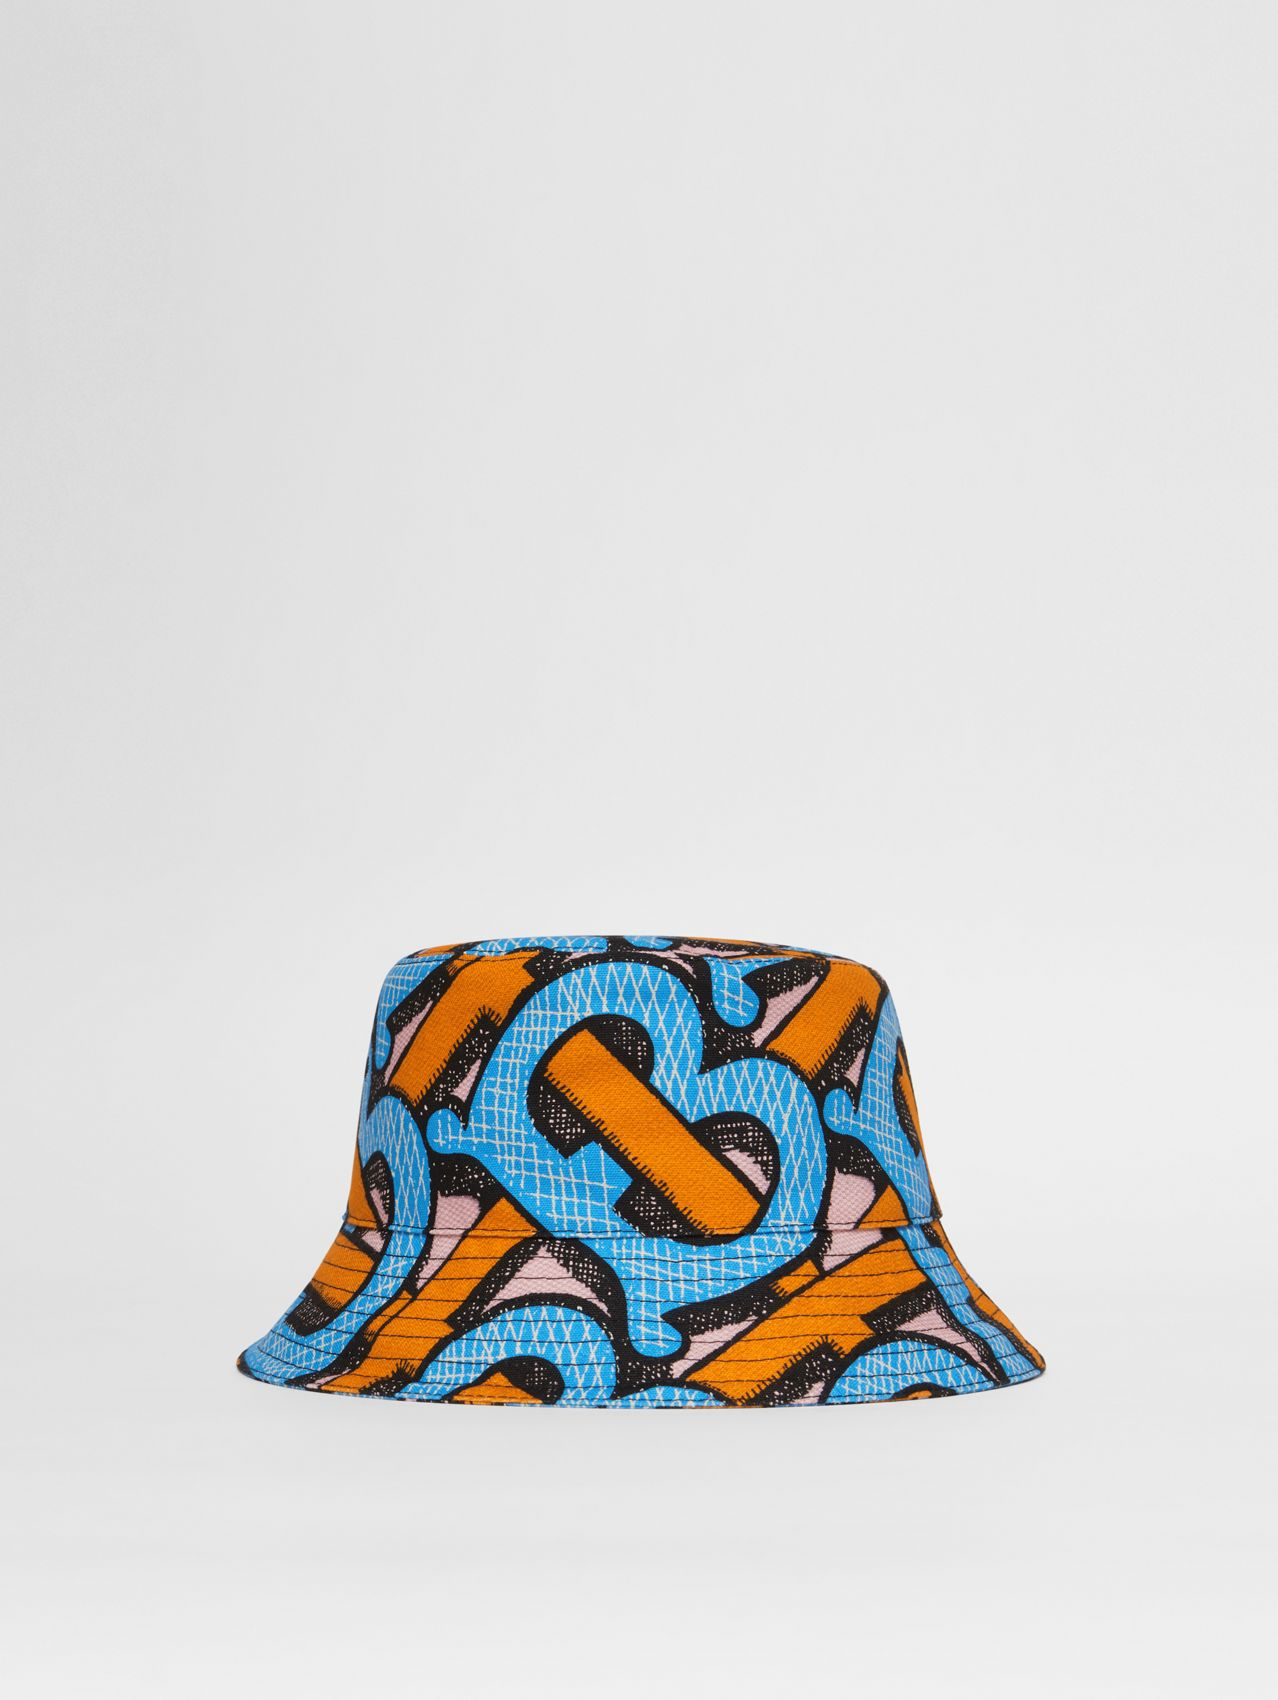 Monogram Print Cotton Canvas Bucket Hat (Bright Cobalt)